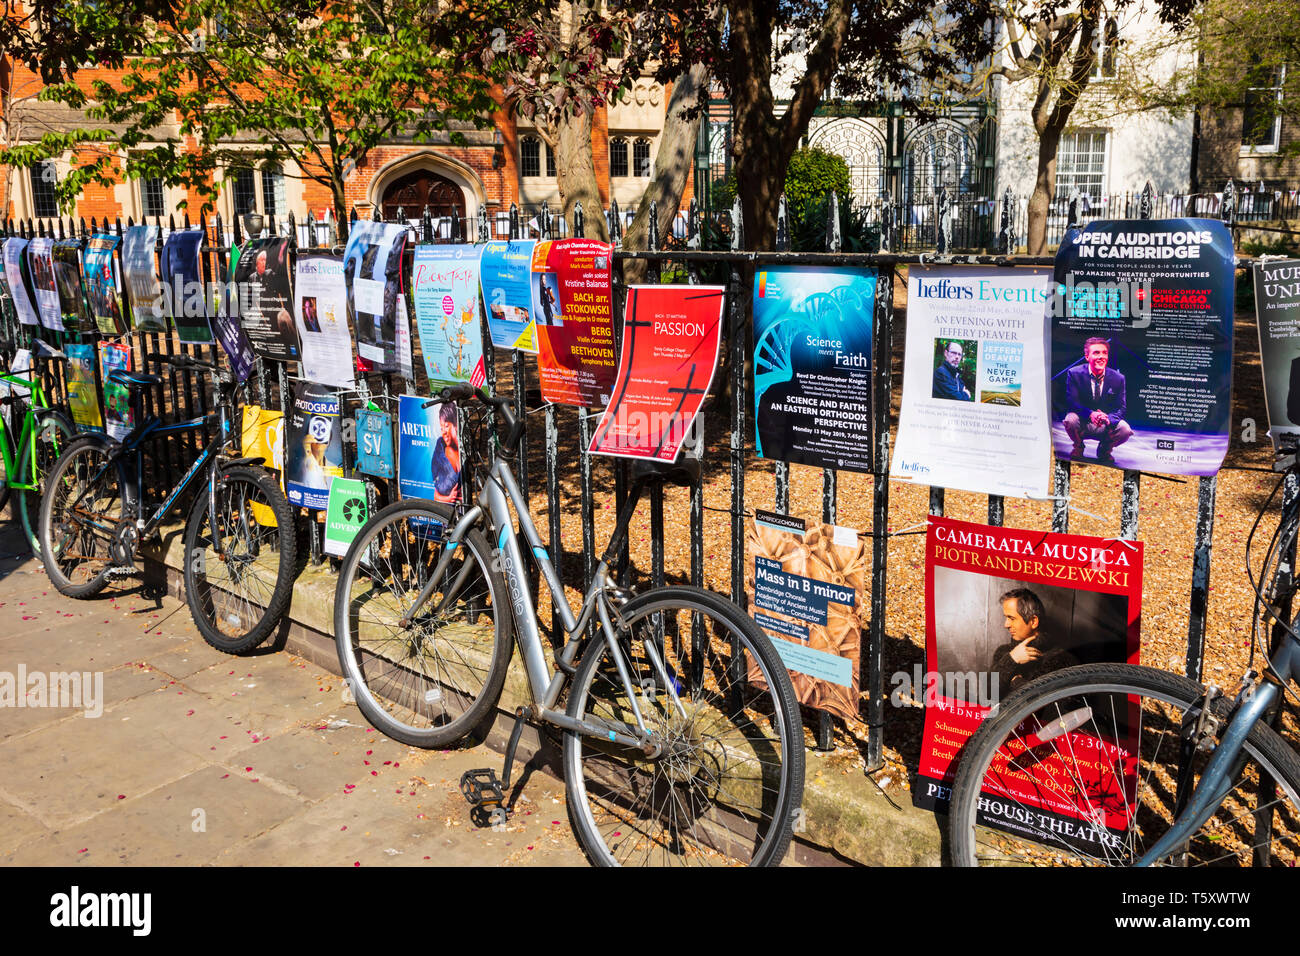 Bicycles and posters on the railings of the All Saints garden, art and craft fair, Trinity Street, University town of Cambridge, Cambridgeshire, Engla - Stock Image